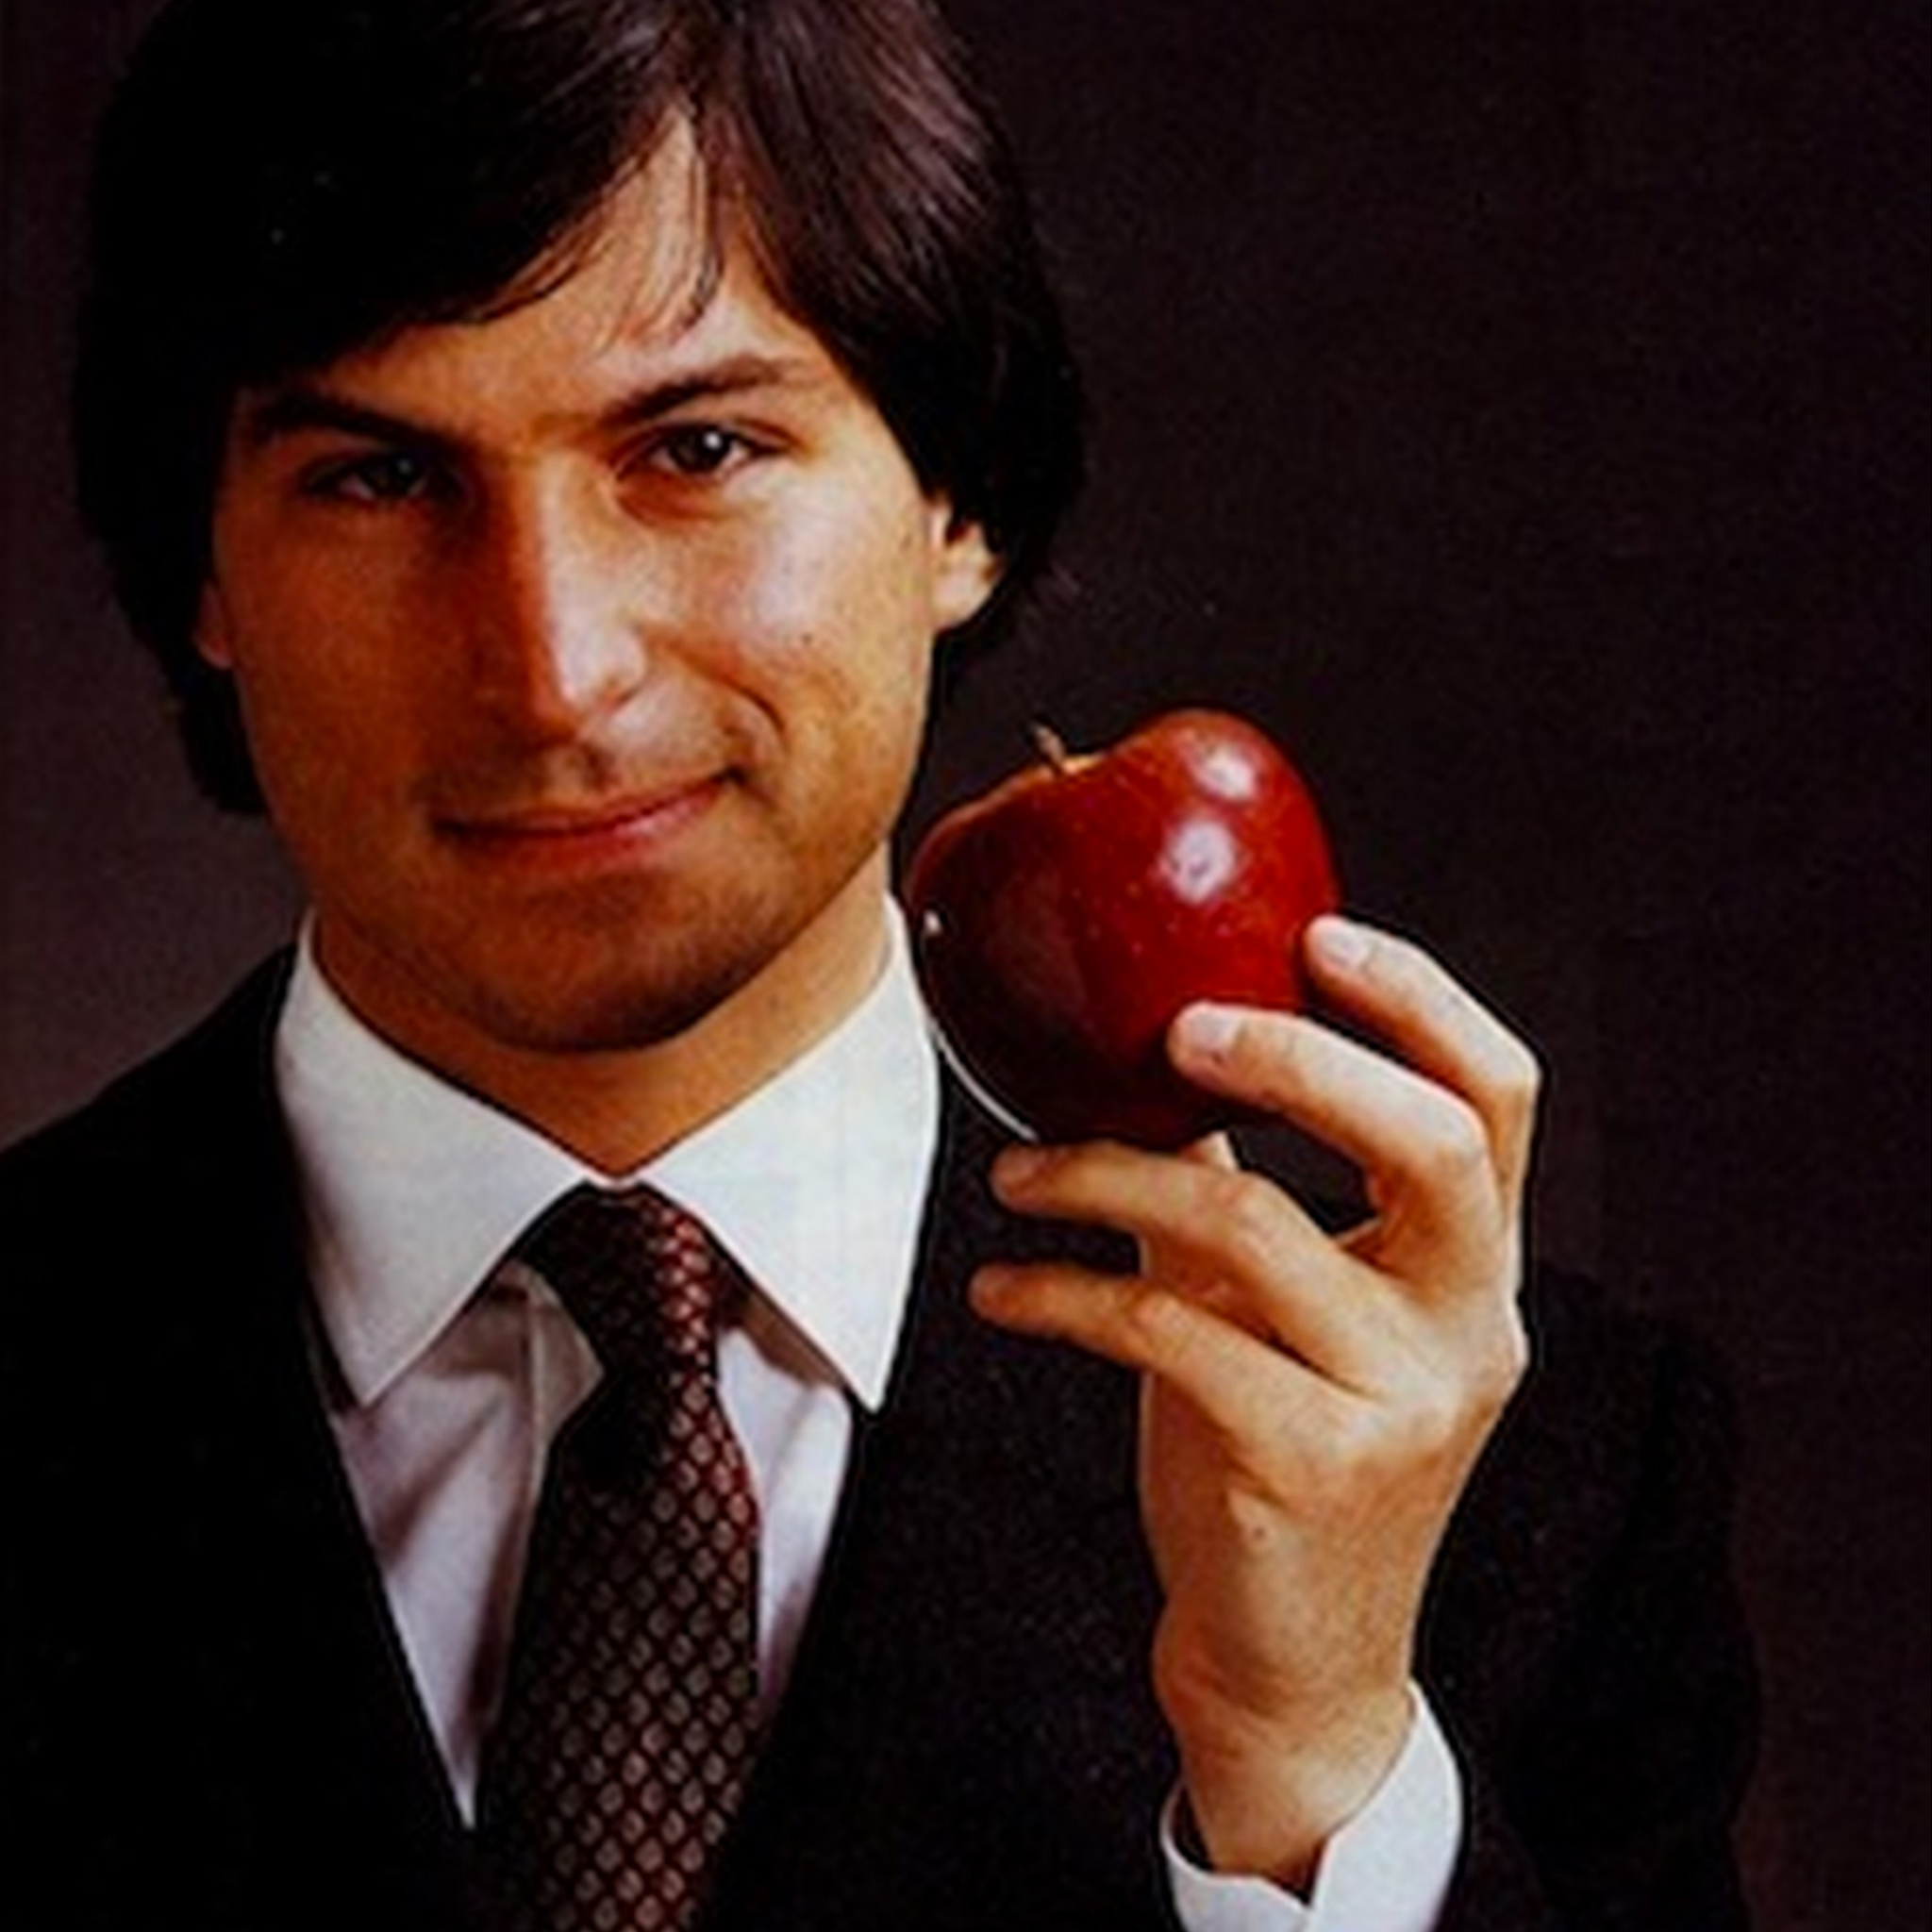 Steve Jobs 1976 3Wallpapers iPade Retina Steve Jobs 1976   iPad Retina